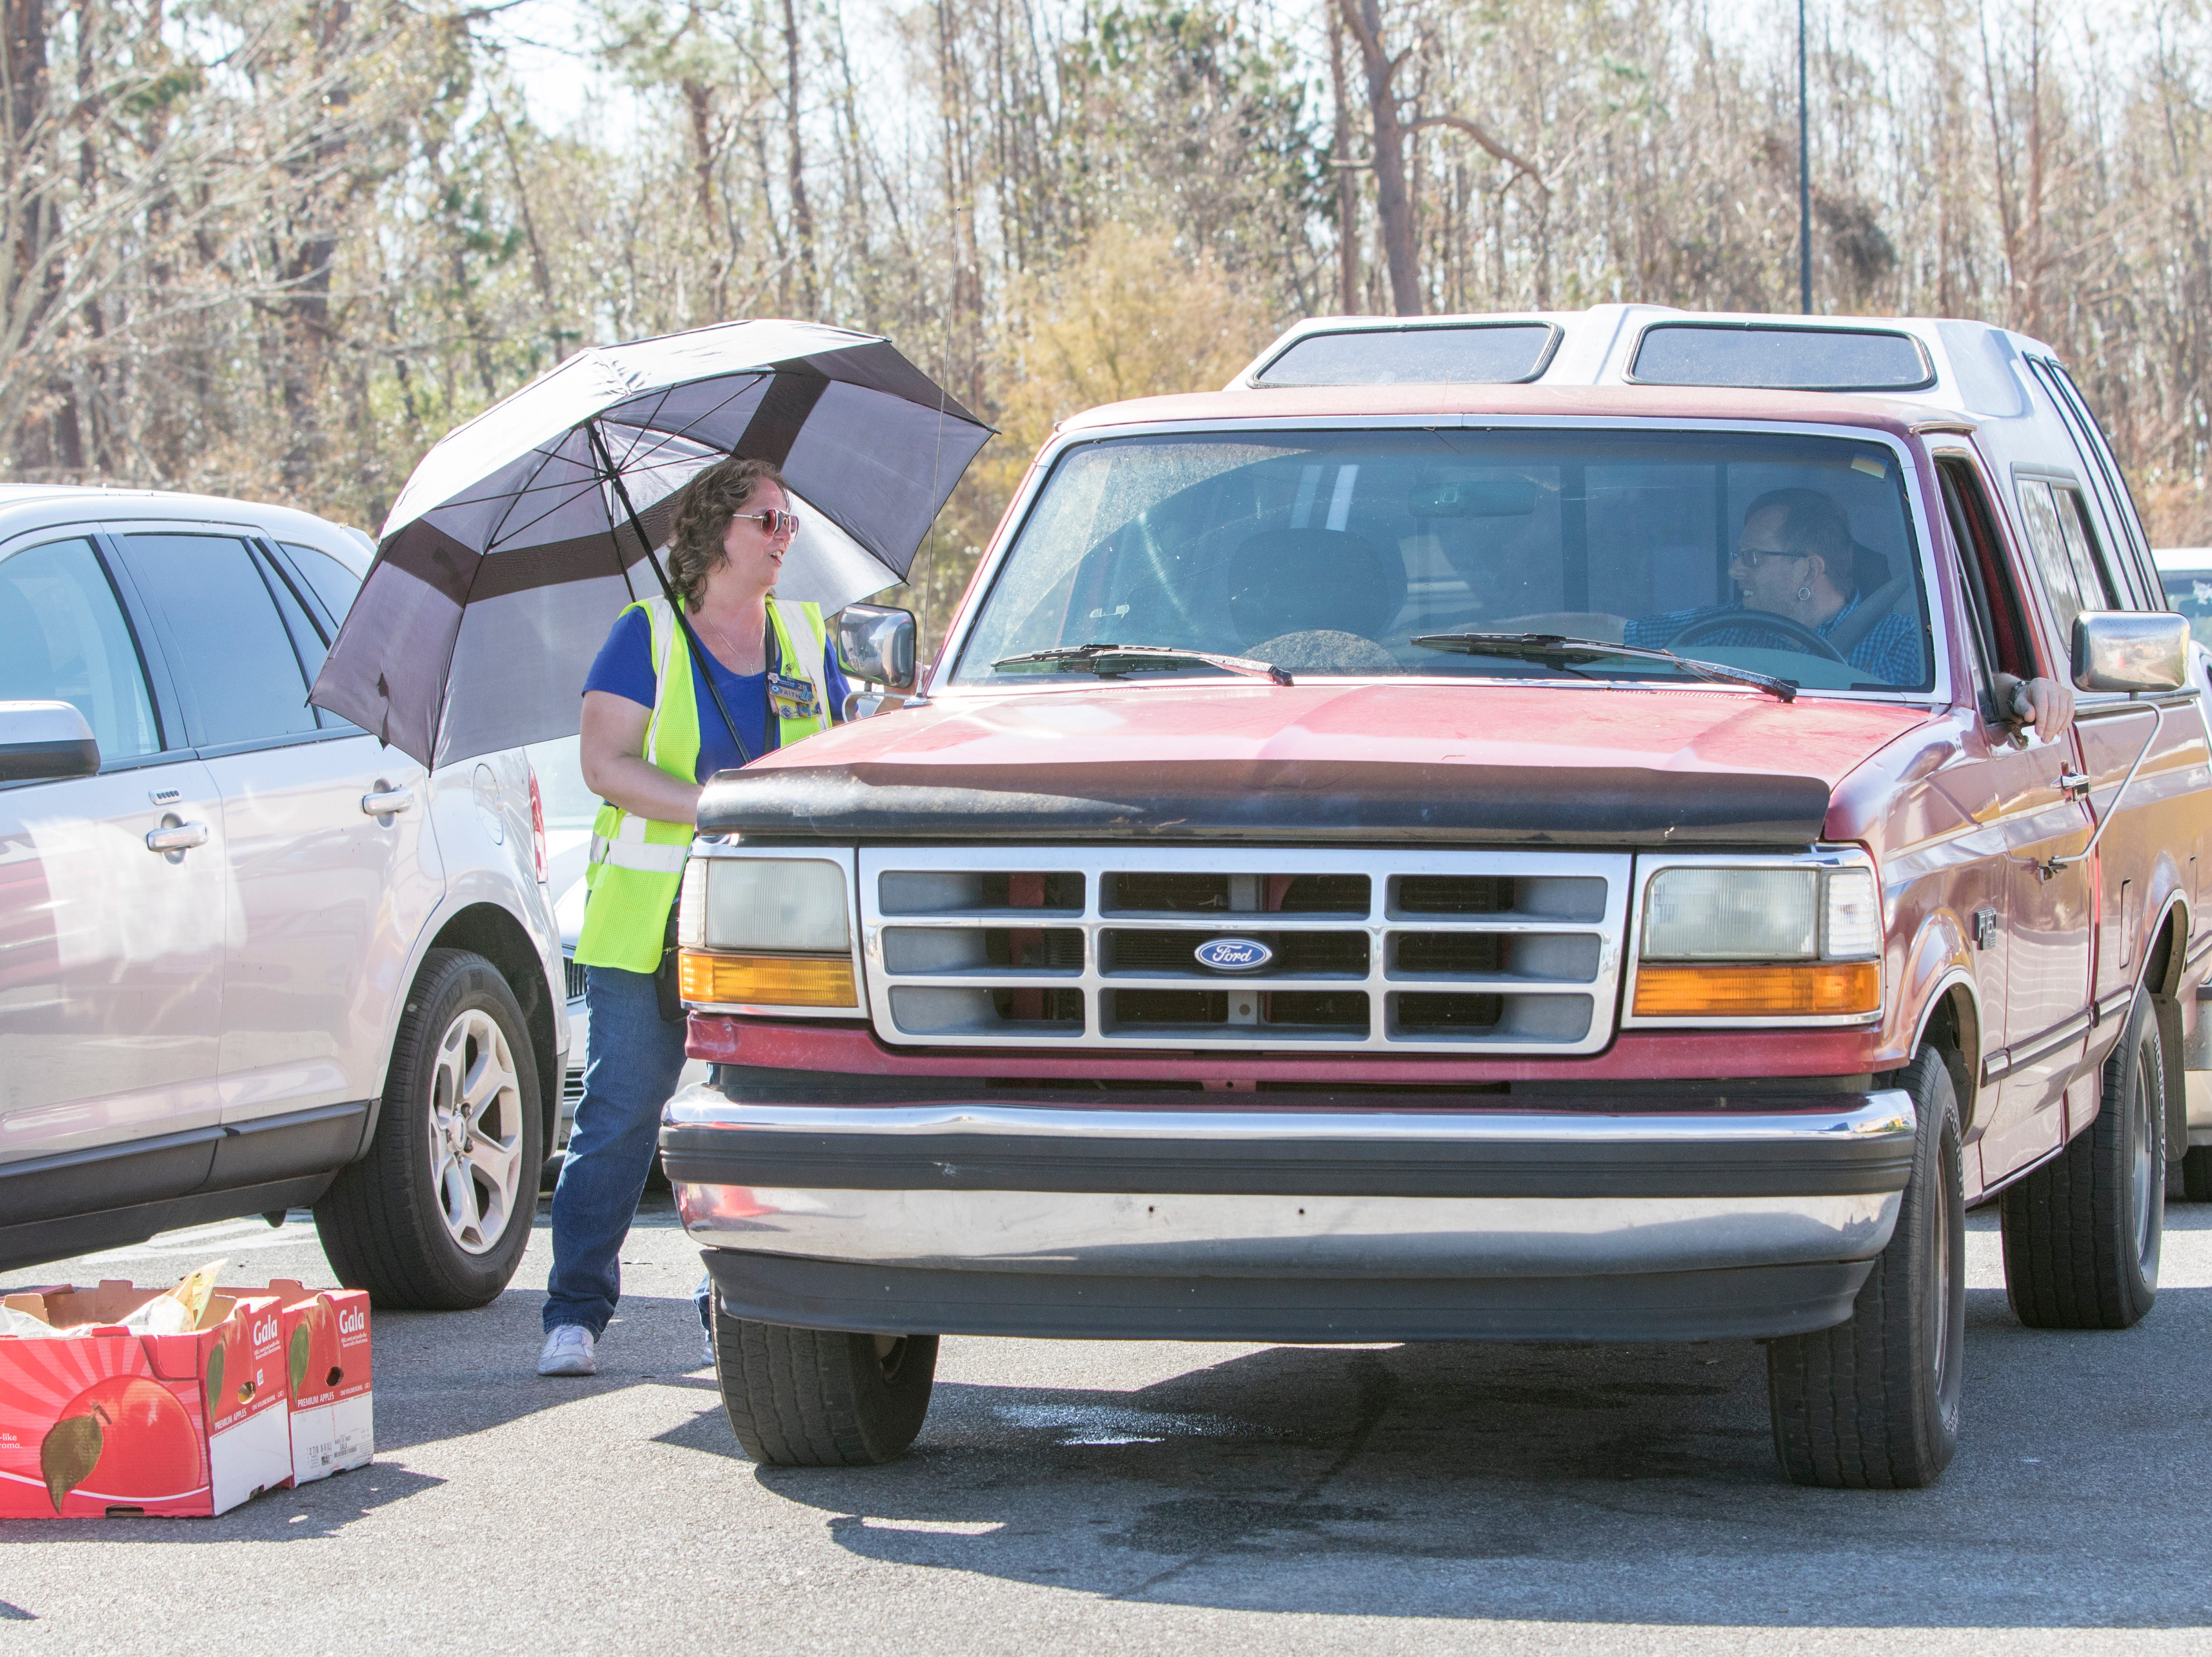 Faith Hawkins, of Kissimmee, Florida, chats with drivers and she controls the flow of vehicles waiting for gas at the Sam's Club on West 23rd Street in Panama City, Florida on Wednesday, October 17, 2018.  Drivers are thrilled that their wait for gas has gone from up to 4 hours earlier in the week down to 30 to 45 minutes today.